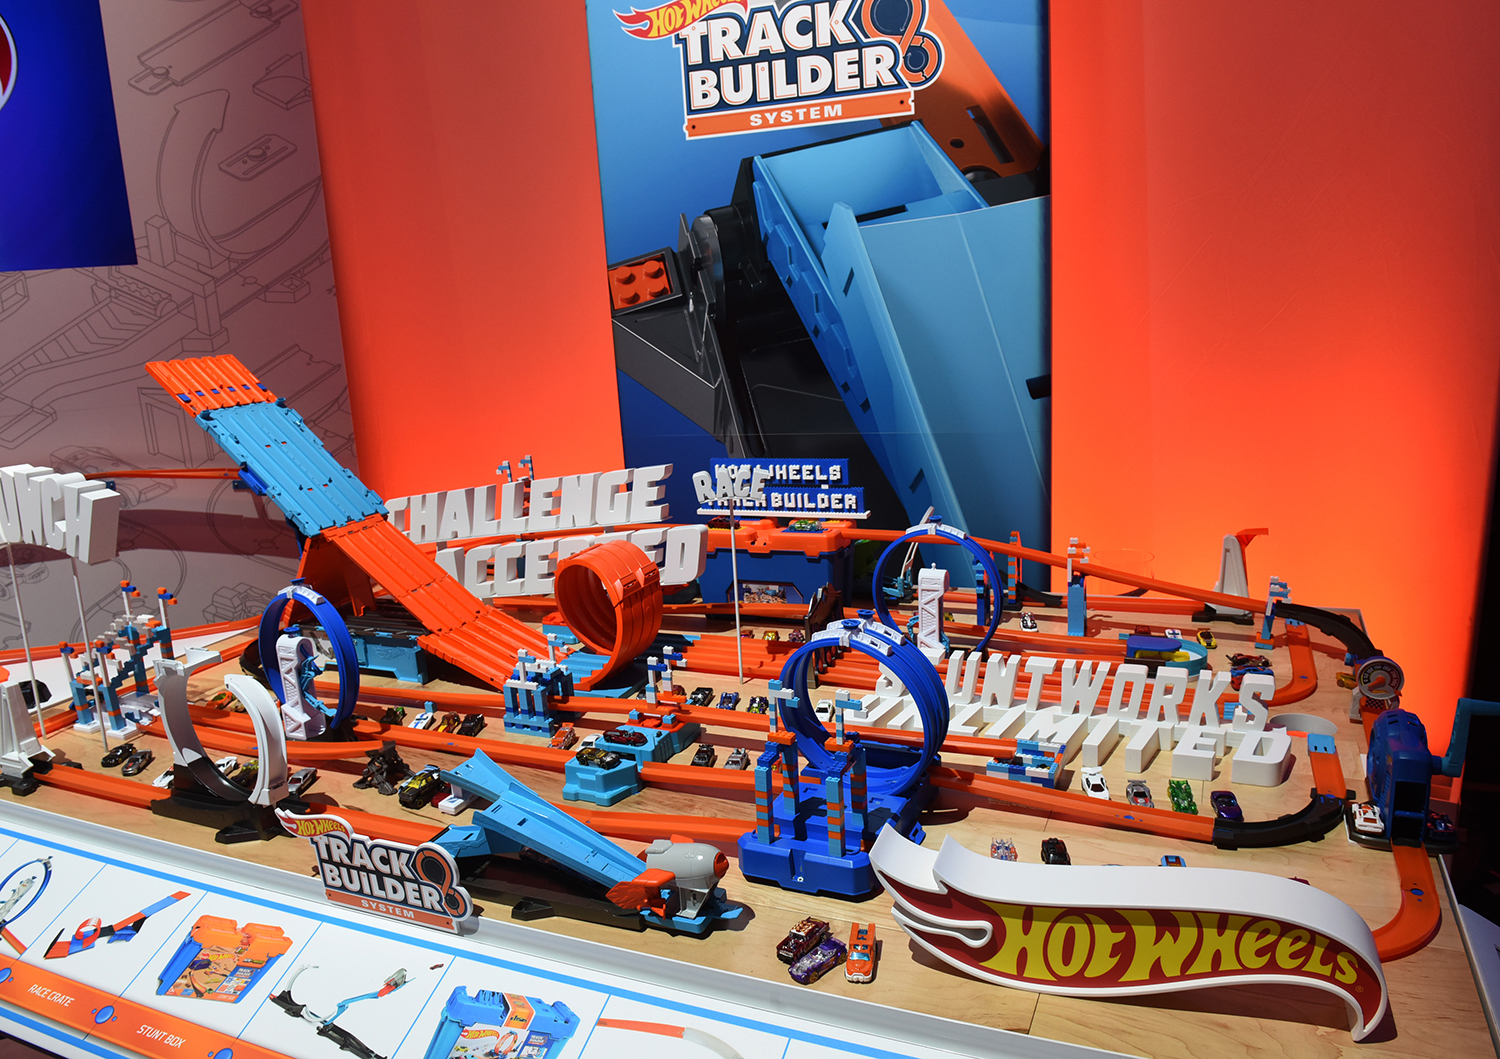 <div class='meta'><div class='origin-logo' data-origin='AP'></div><span class='caption-text' data-credit='Diane Bondareff/AP Images for Mattel'>The Hot Wheels Track Builder playsets line includes track, boosters and loops that can be combined in multiple ways.</span></div>